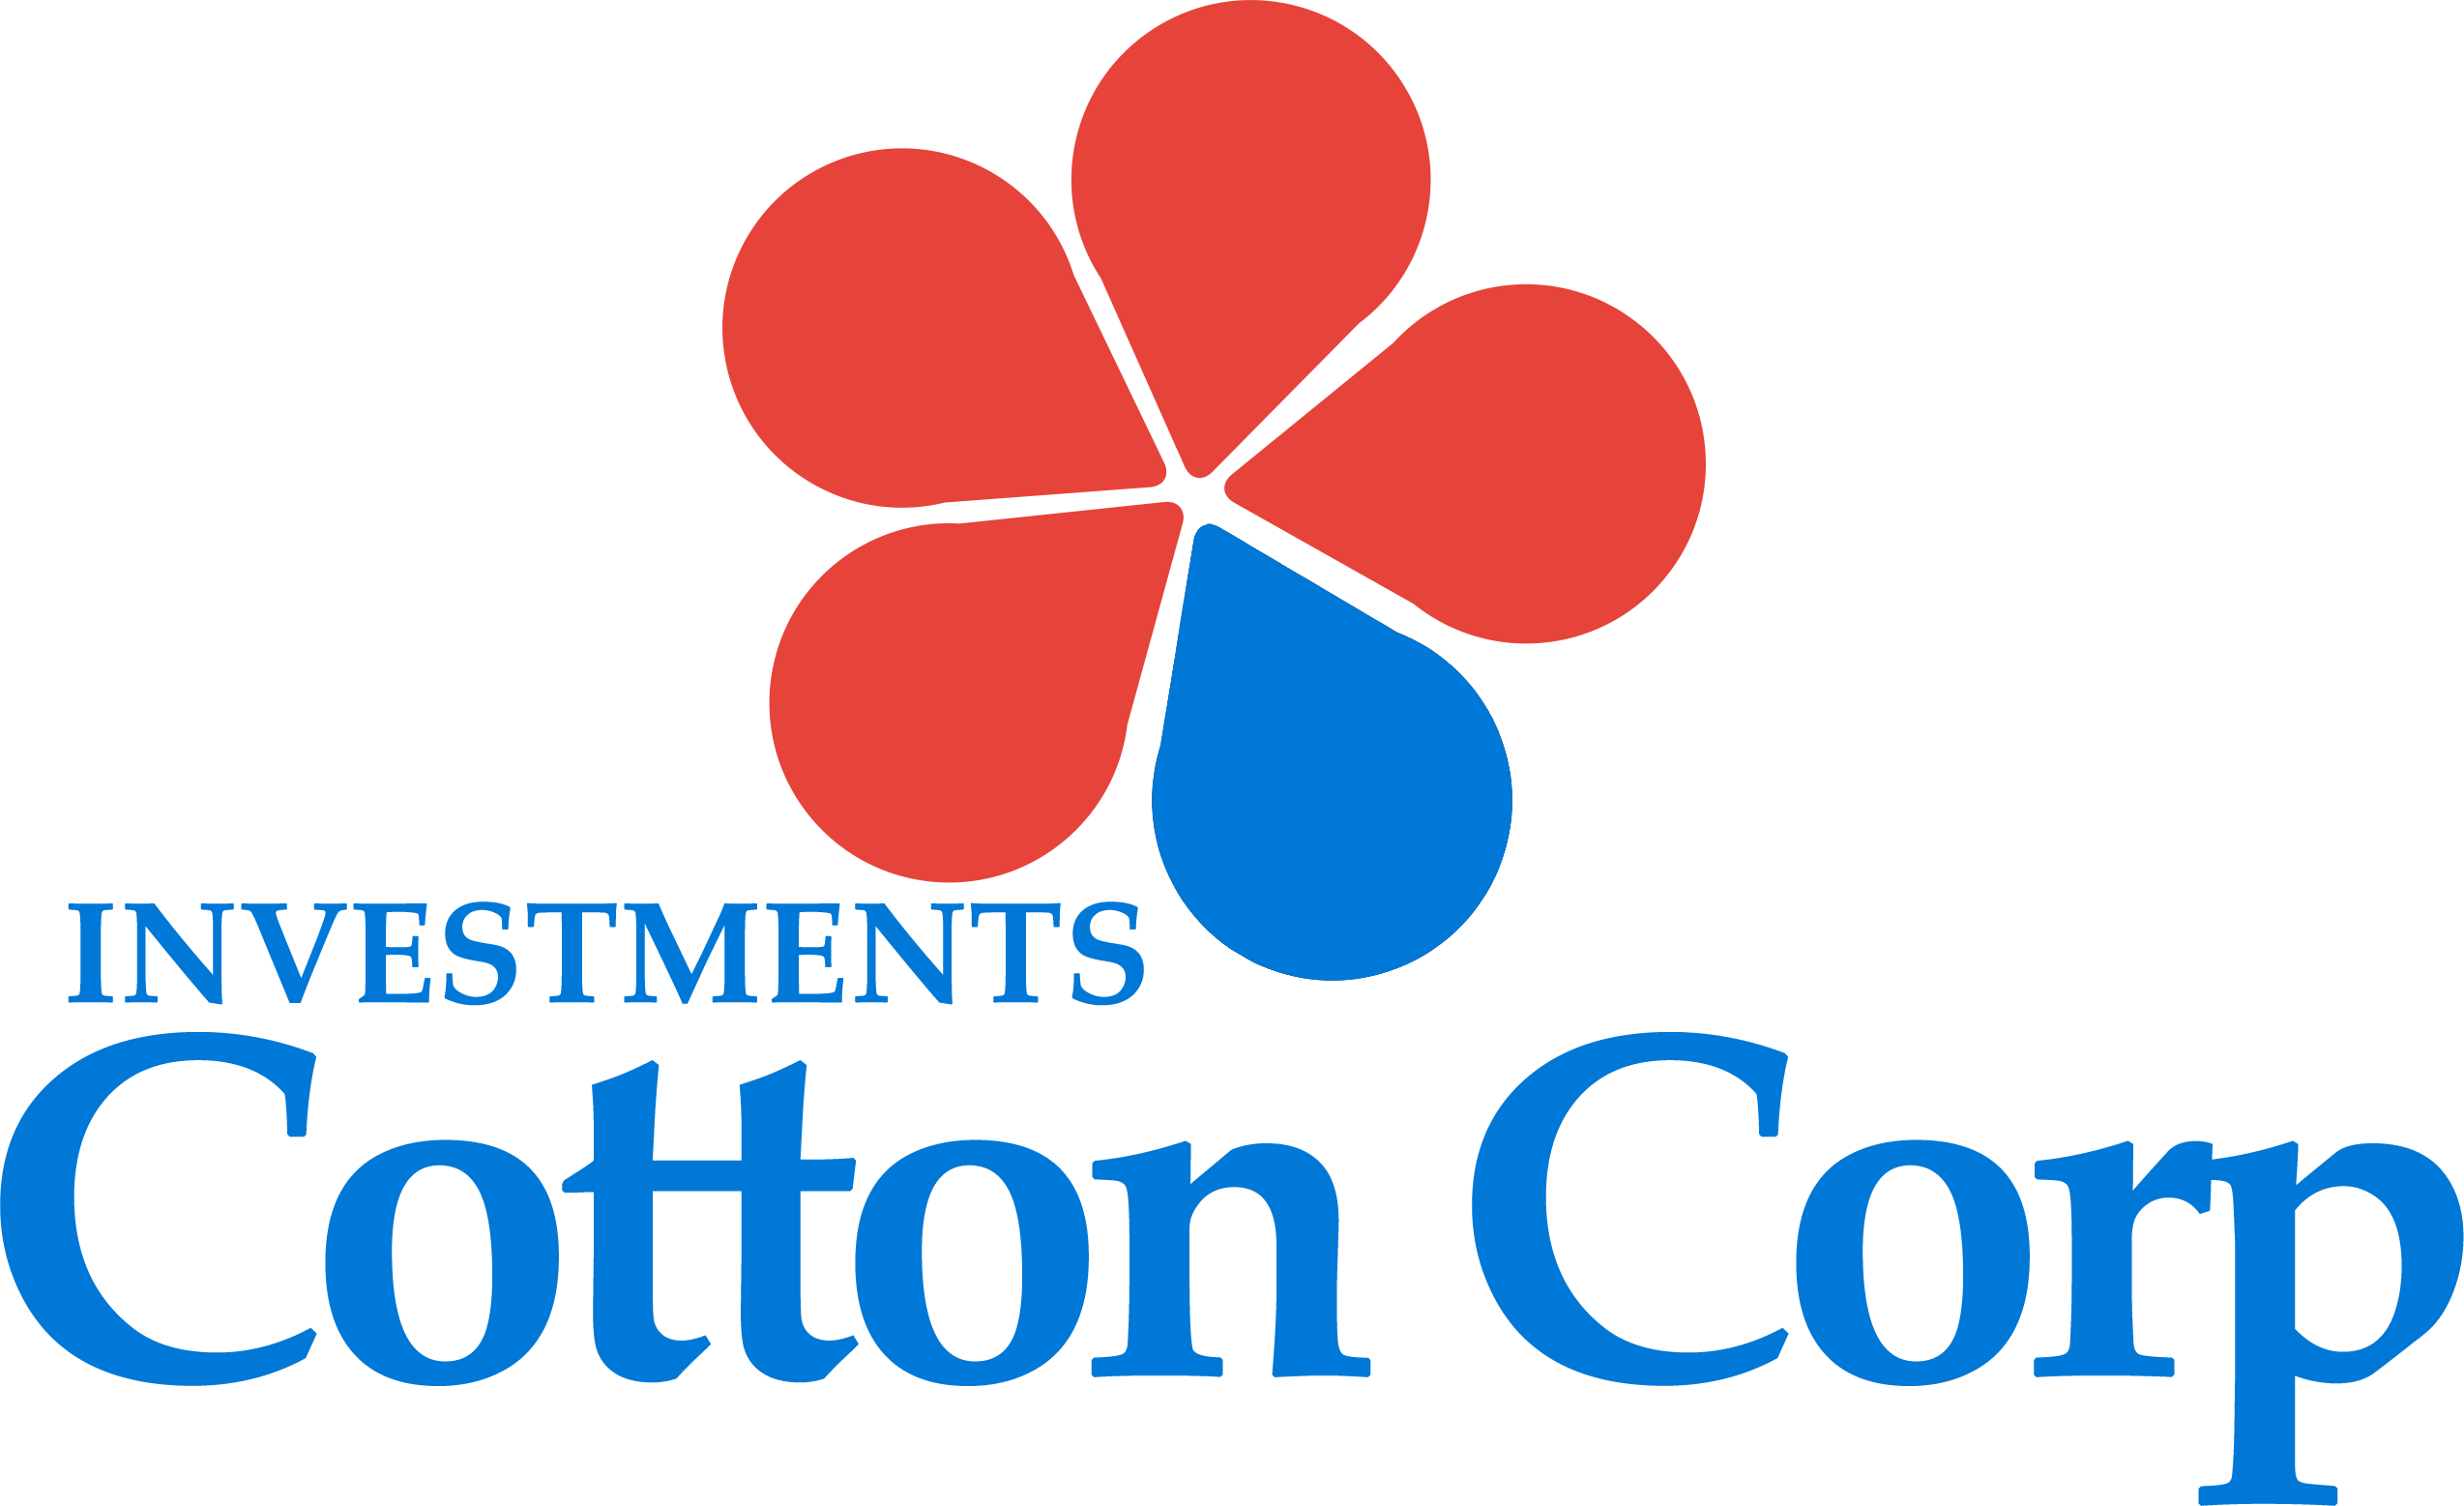 Investments Cotton Corp logo